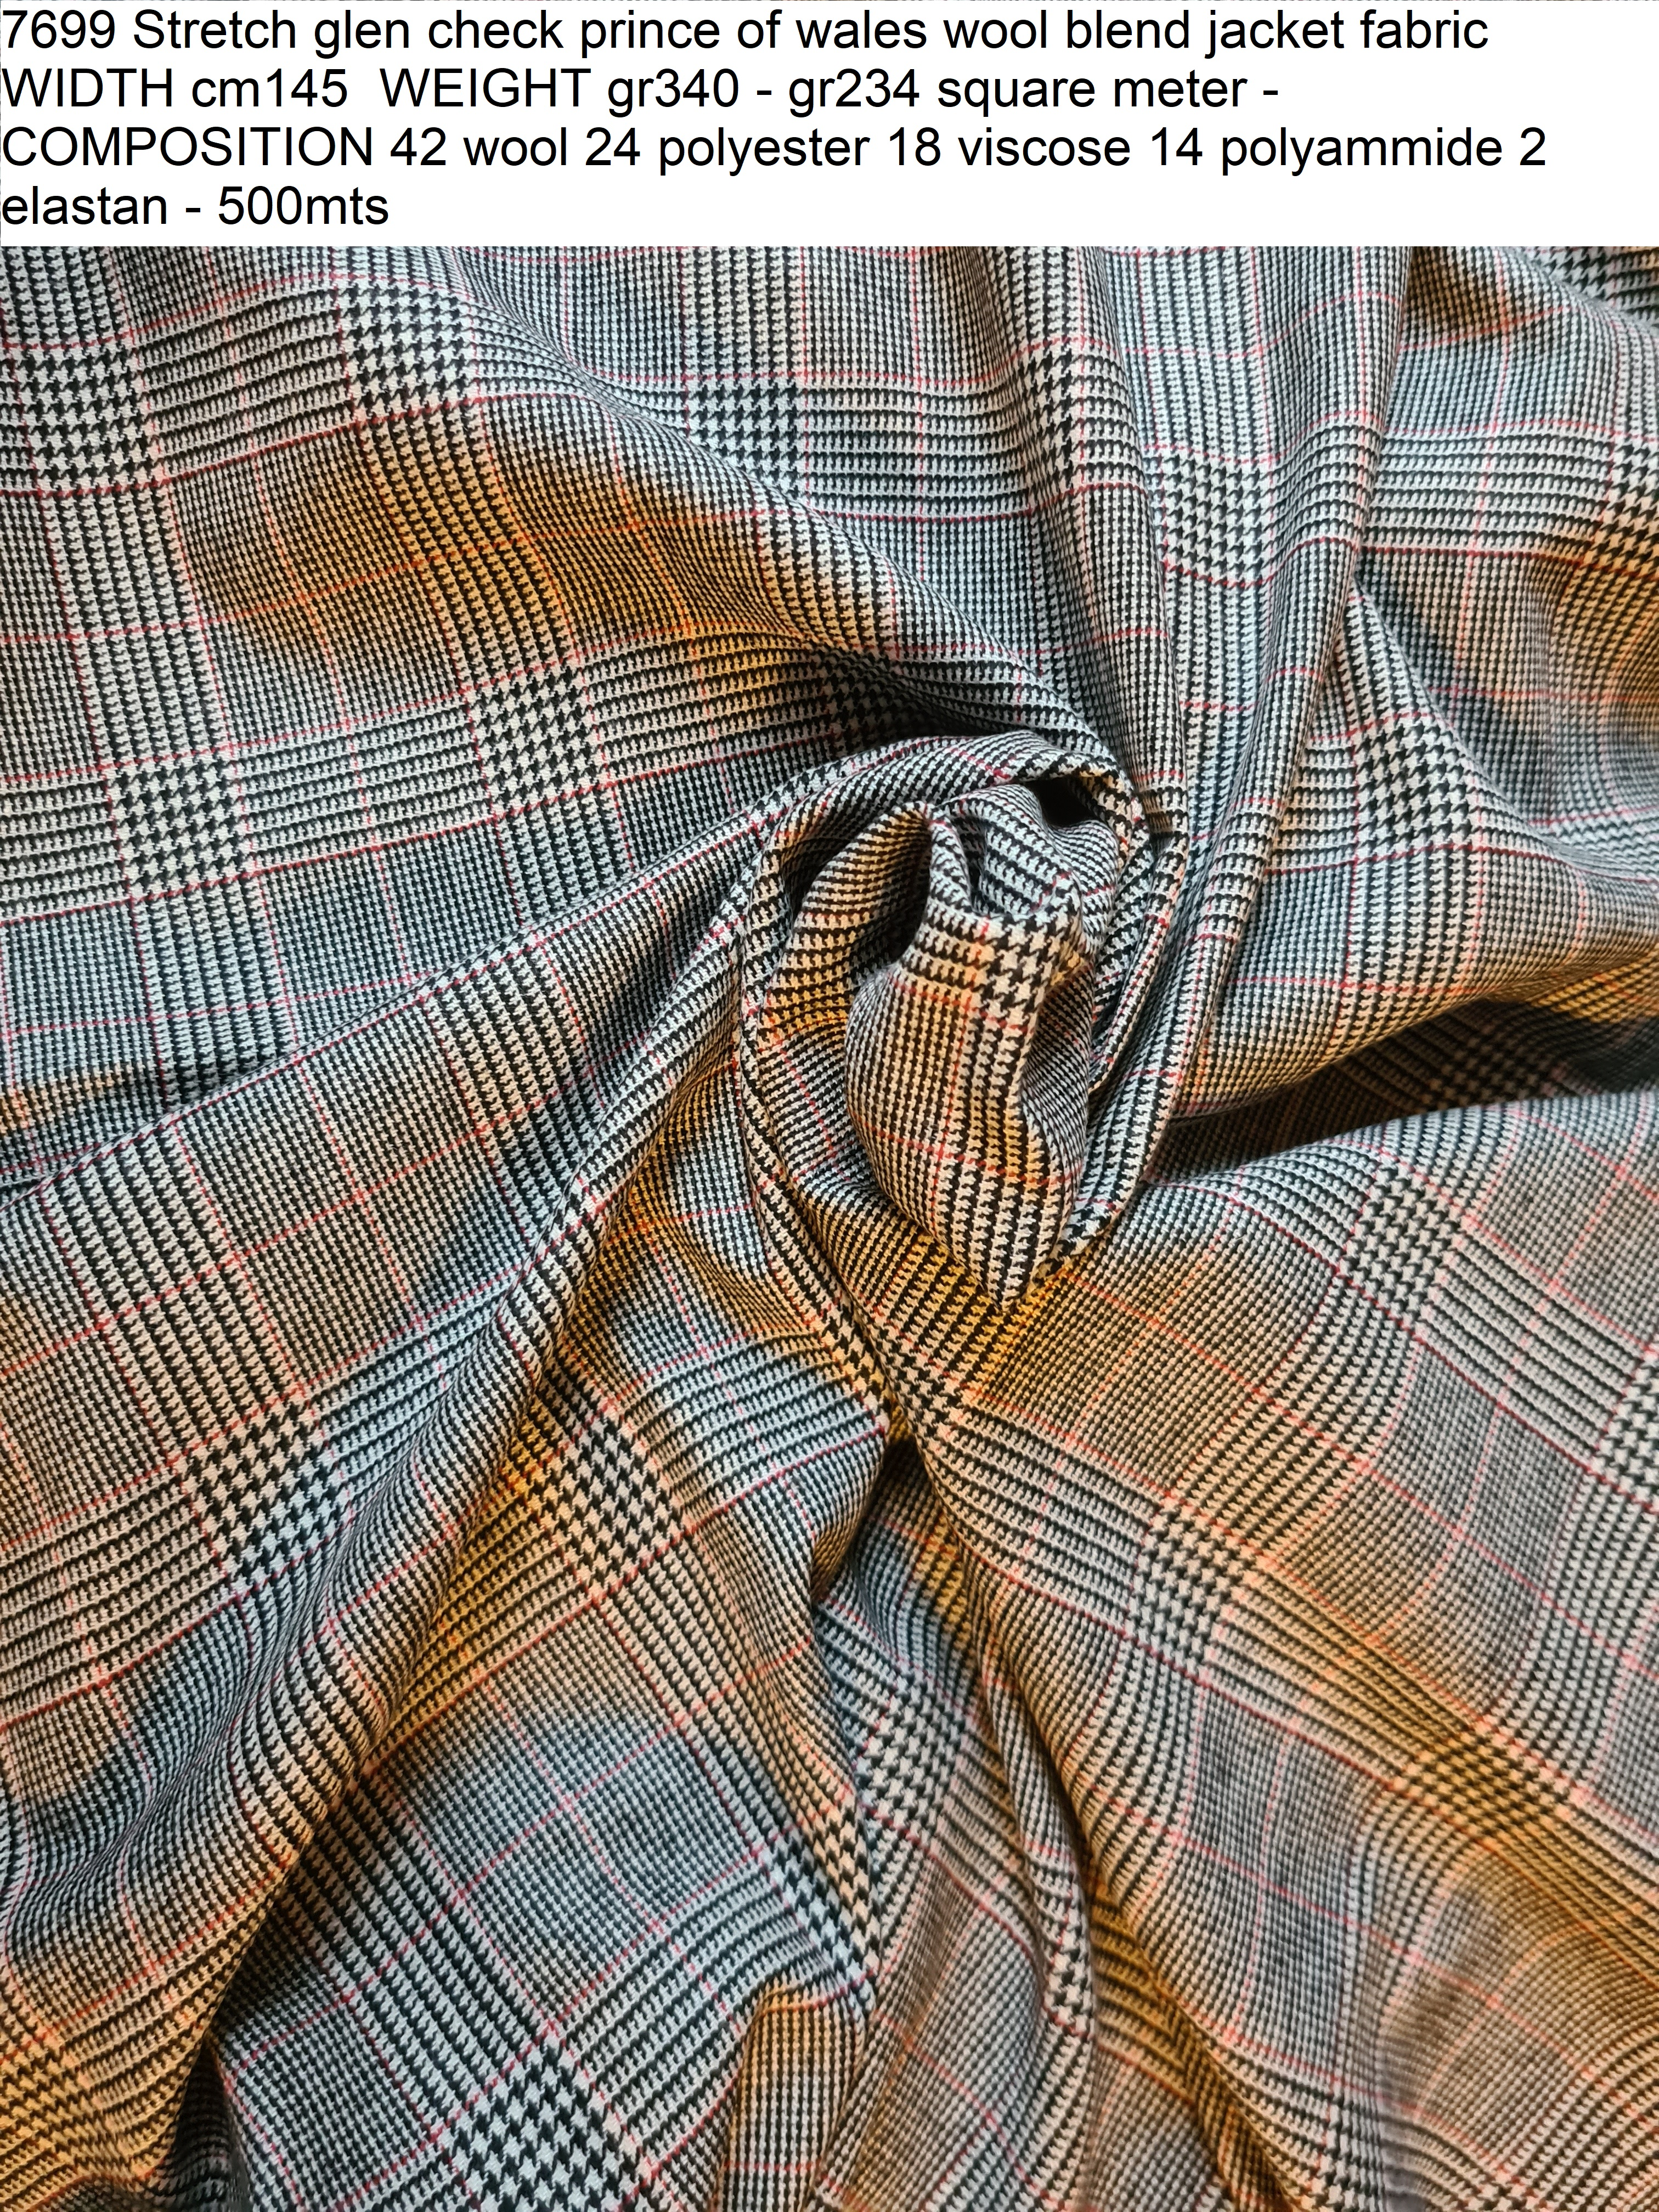 7699 Stretch glen check prince of wales wool blend jacket fabric WIDTH cm145 WEIGHT gr340 - gr234 square meter - COMPOSITION 42 wool 24 polyester 18 viscose 14 polyammide 2 elastan - 500mts